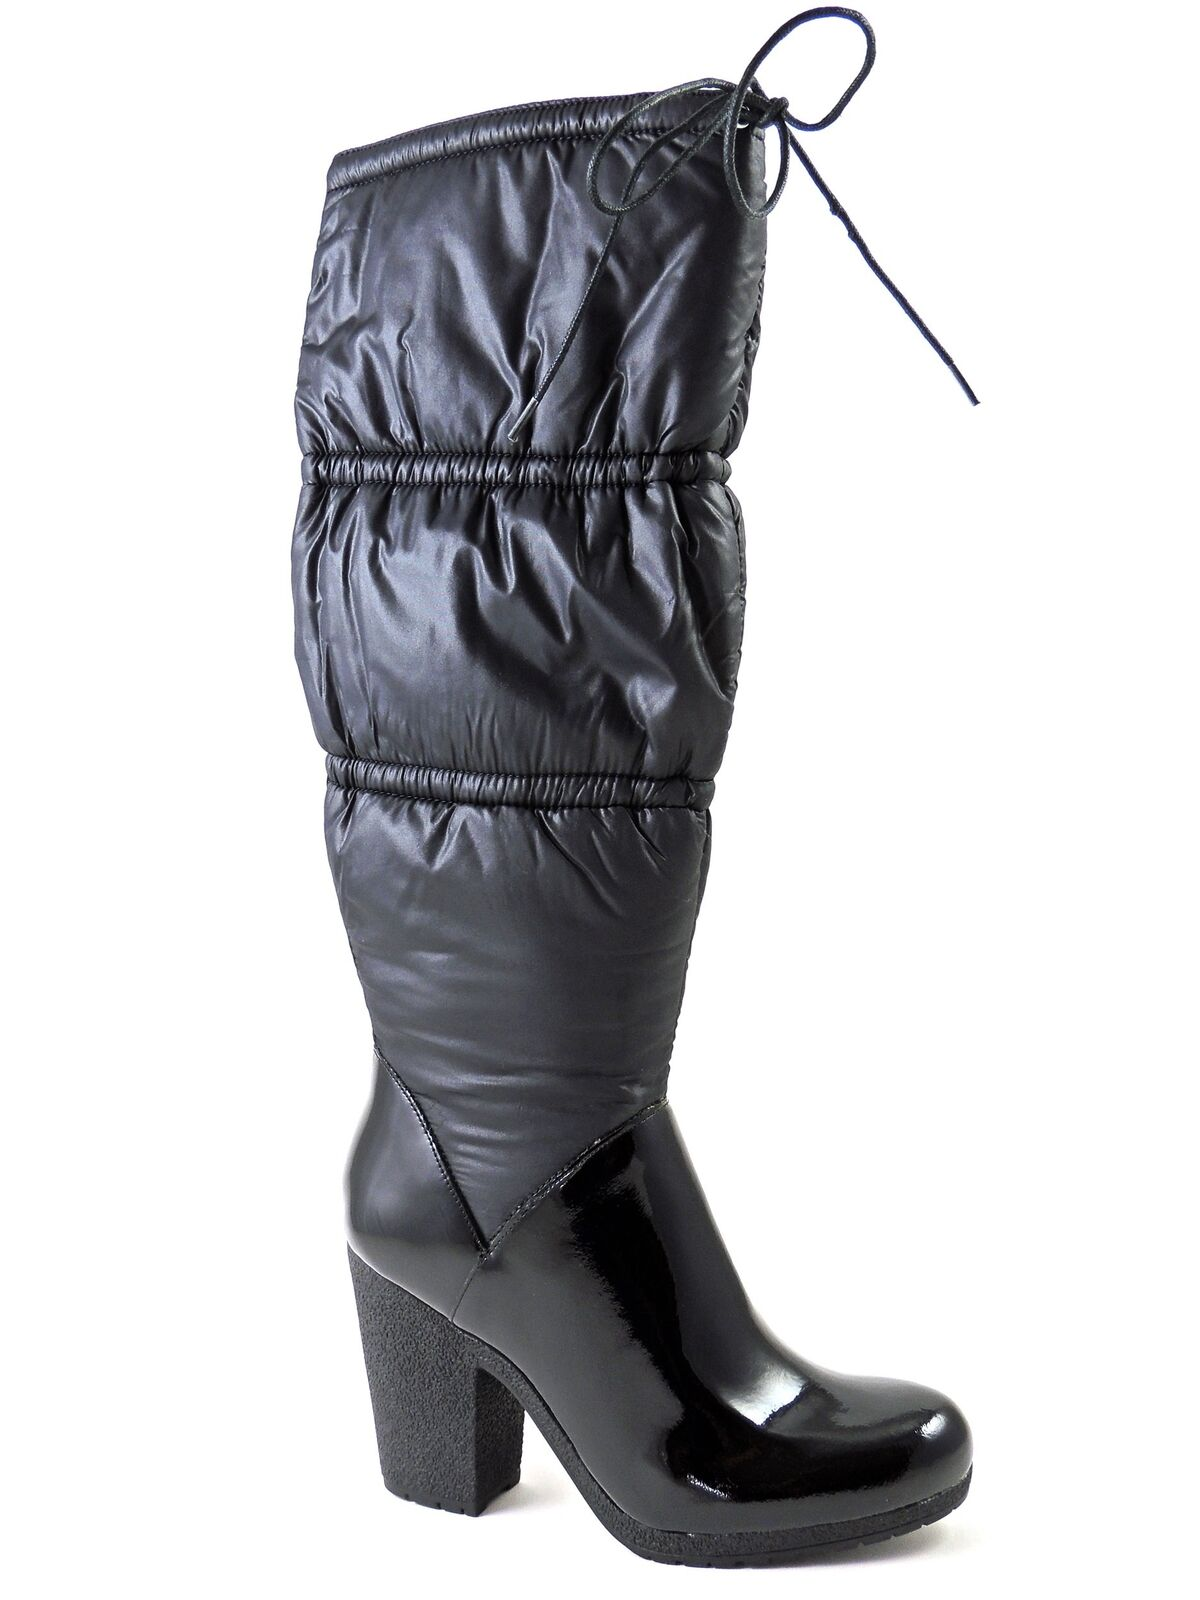 Angiolini Enzo Women's Handler Winter Boots Black Patent Leather Leather Leather & Puffer Sz 7 M d293bb